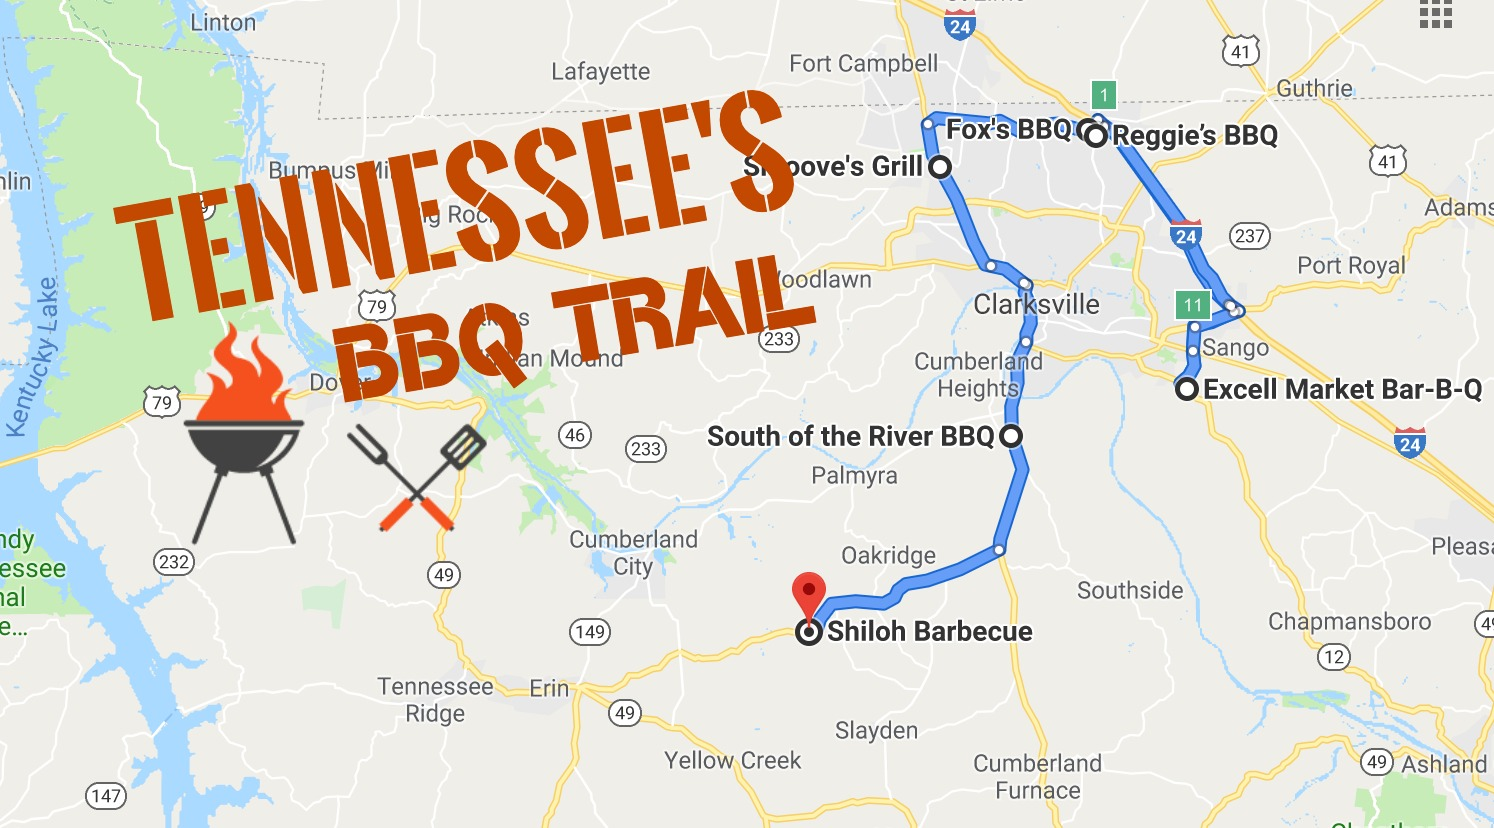 This BBQ Trail Through Tennssee Is Absolutely Amazing Royal Blue Trail Map on royal blue home, royal blue helmet, royal blue compass, royal blue backpack, royal blue water, royal blue camping, royal blue contact, royal blue rules, royal blue orv wildlife management, royal blue park map, royal blue hat, royal blue wildlife management area, royal blue tennessee, royal blue wma, rock creek ohv map, royal blue camera, royal blue atv gpsmap, royal blue atv riding trails, royal blue food, royal blue fishing,